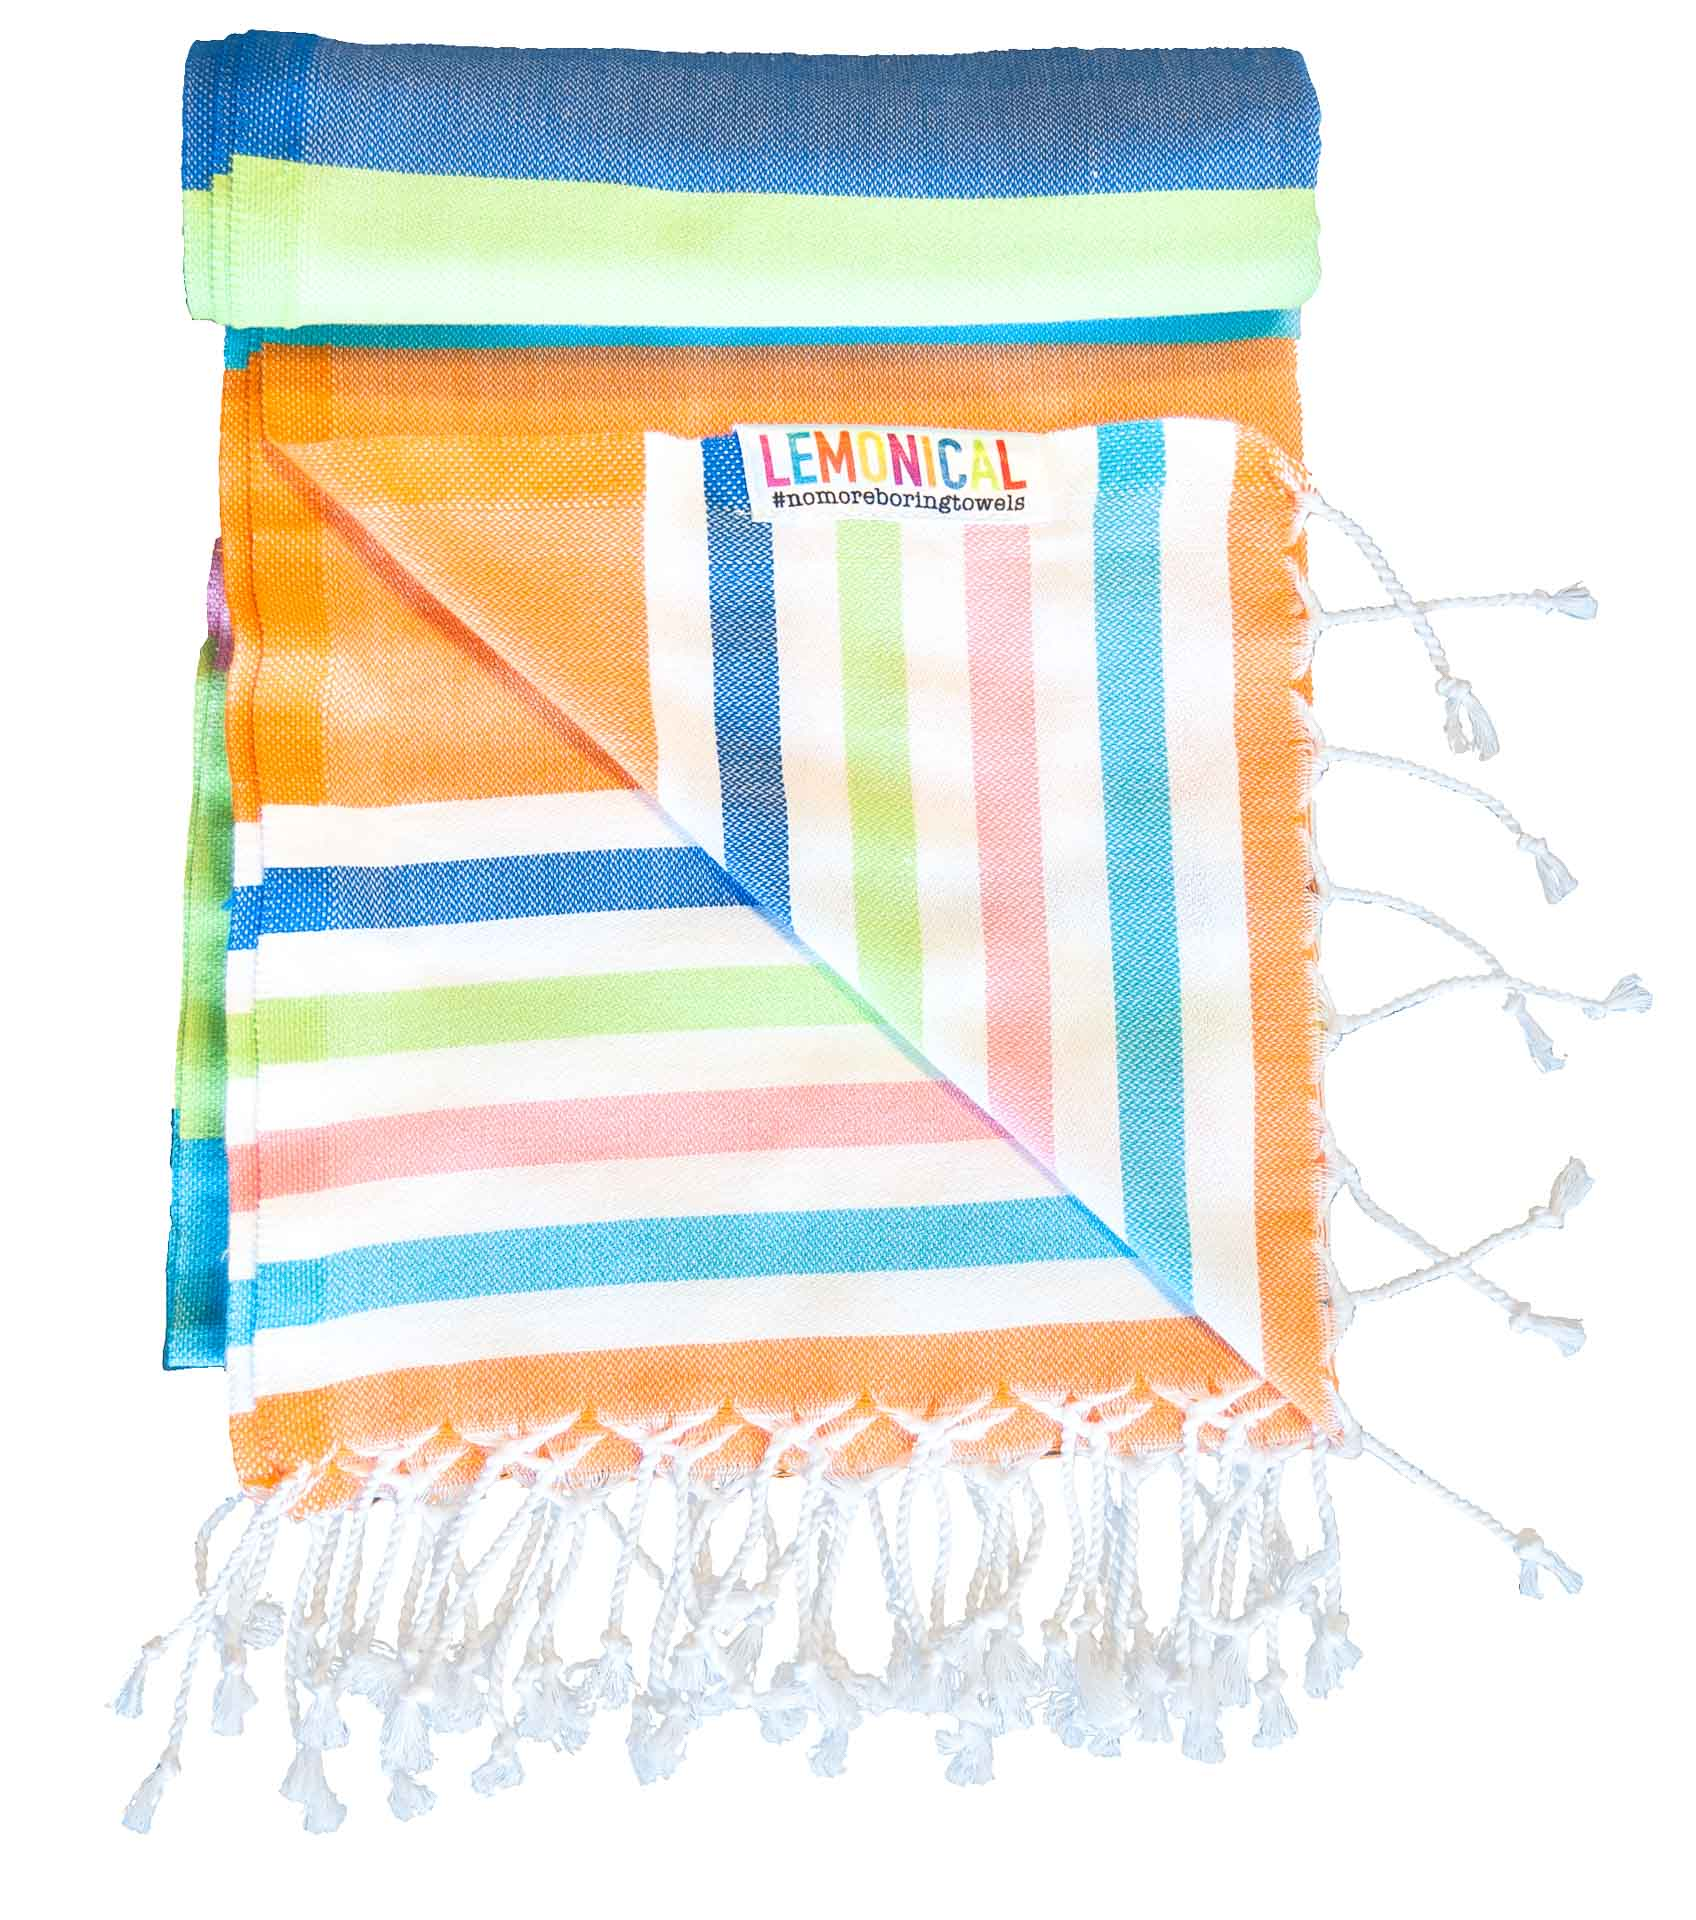 RAINBOW-Towel-Lemonical-3